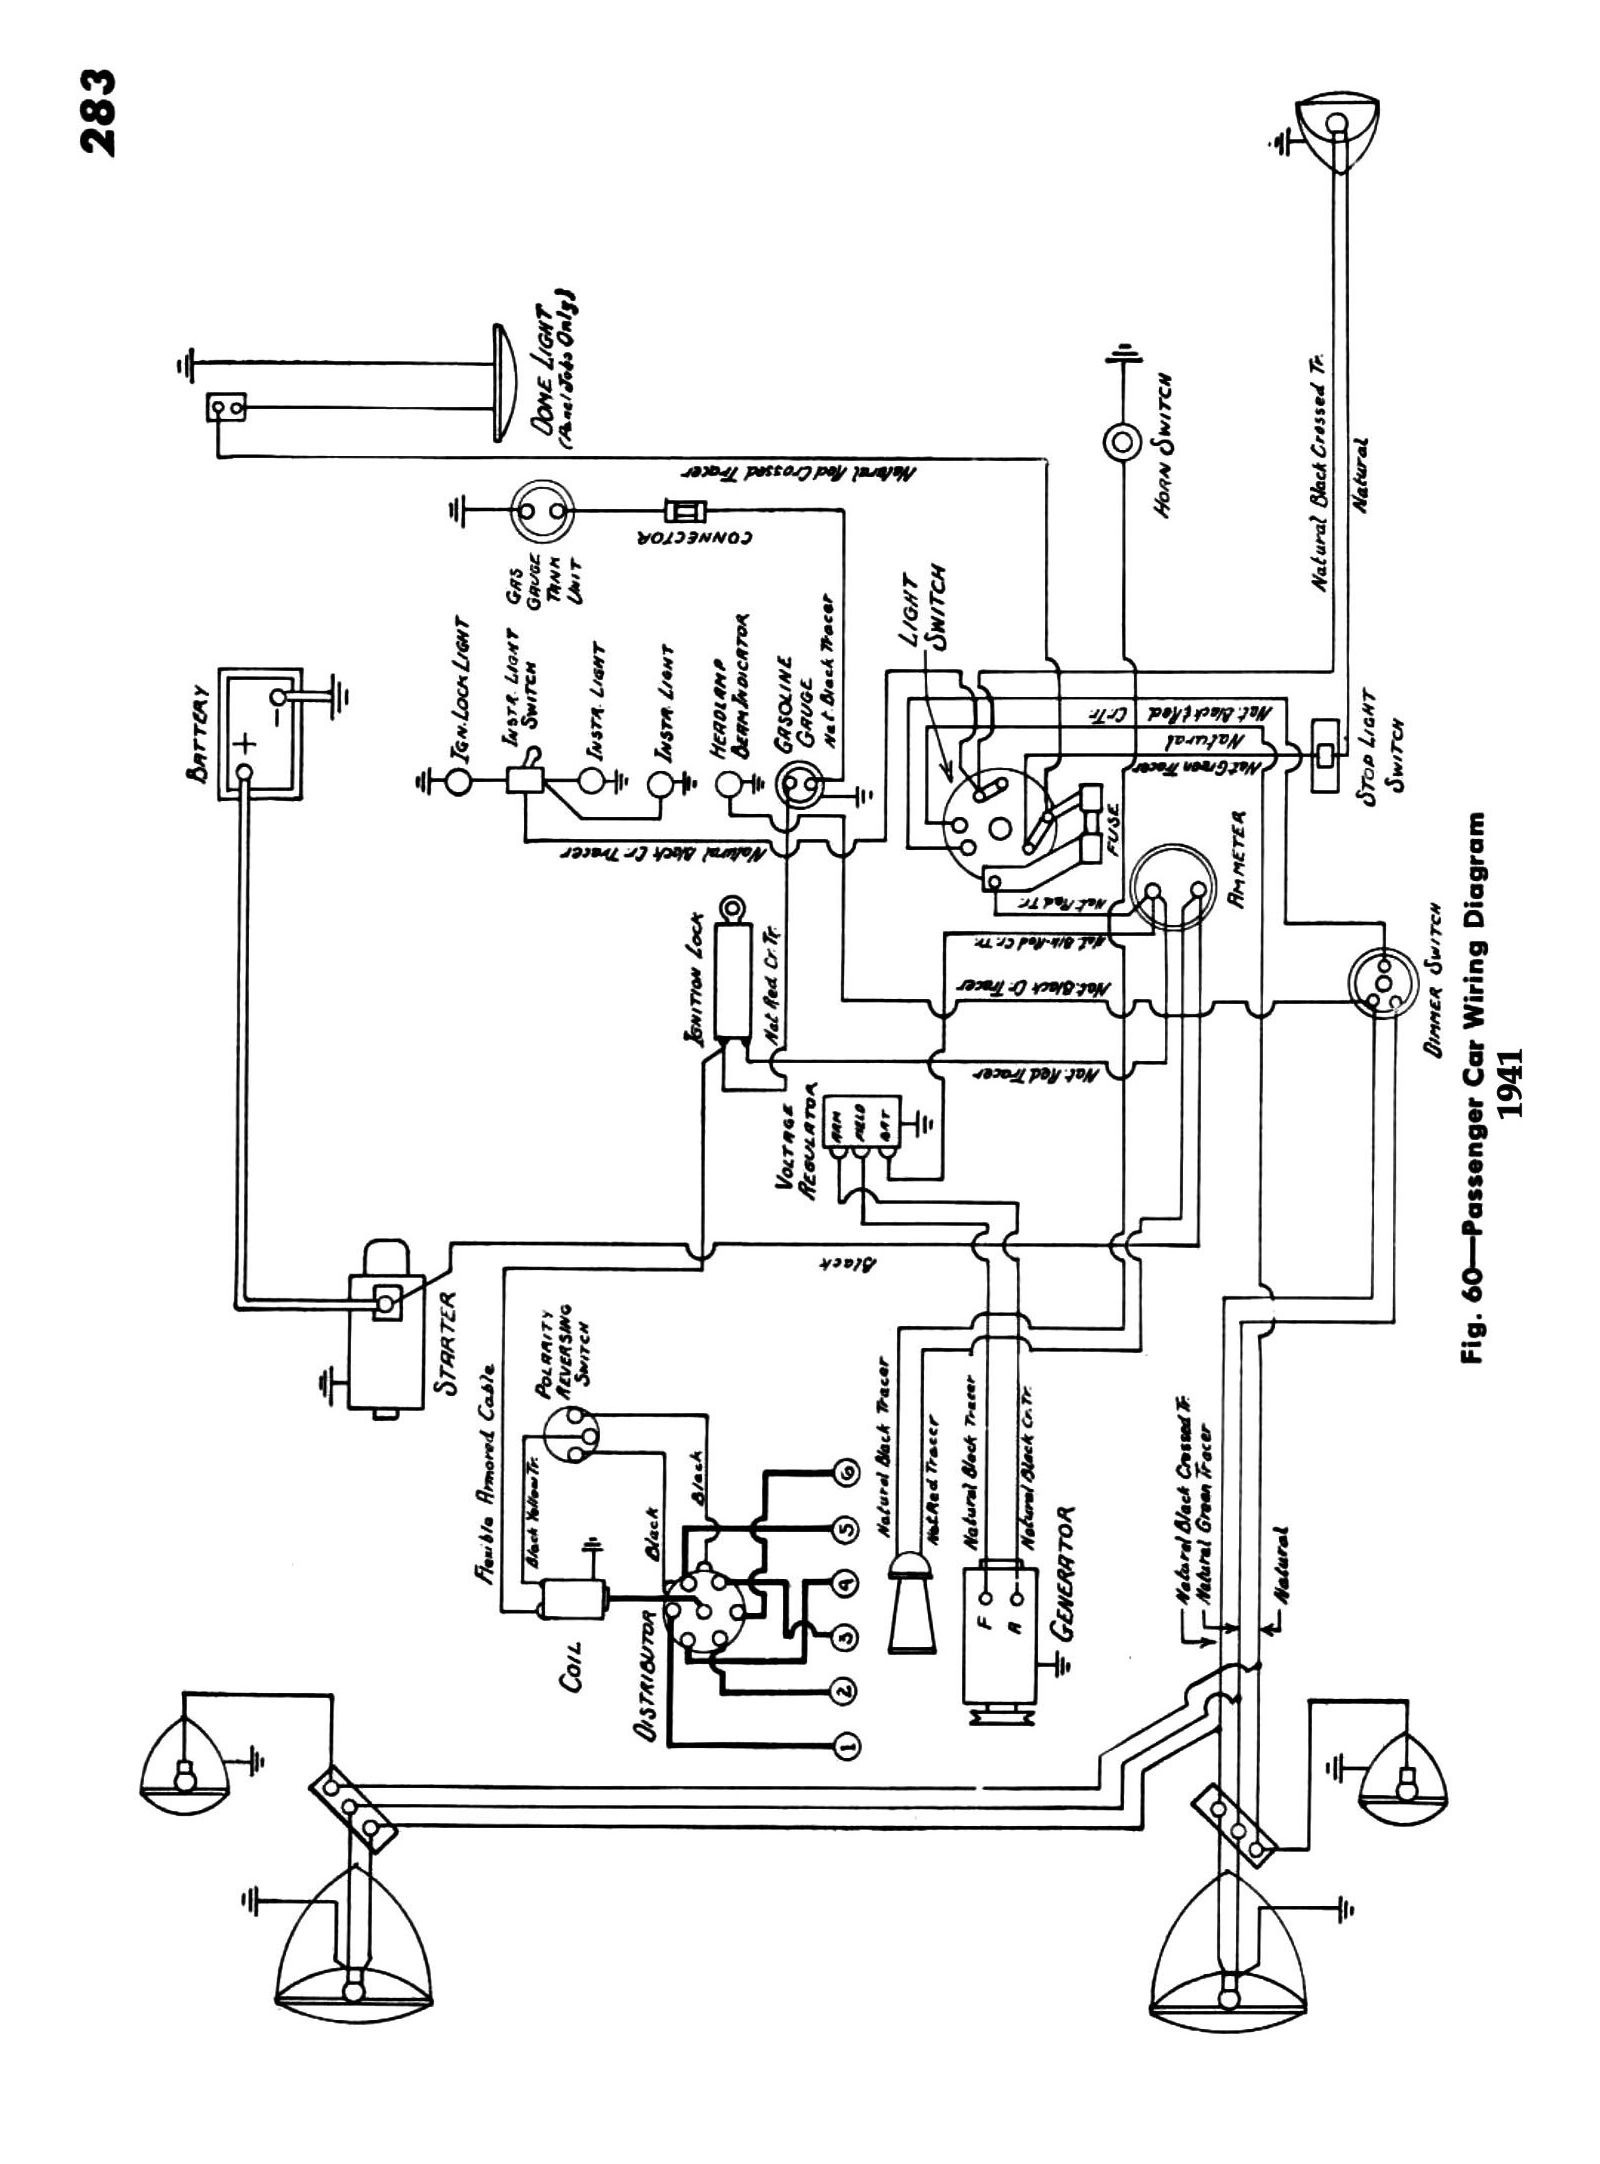 41csm283 chevy wiring diagrams 1999 international 4700 wiring diagram at soozxer.org